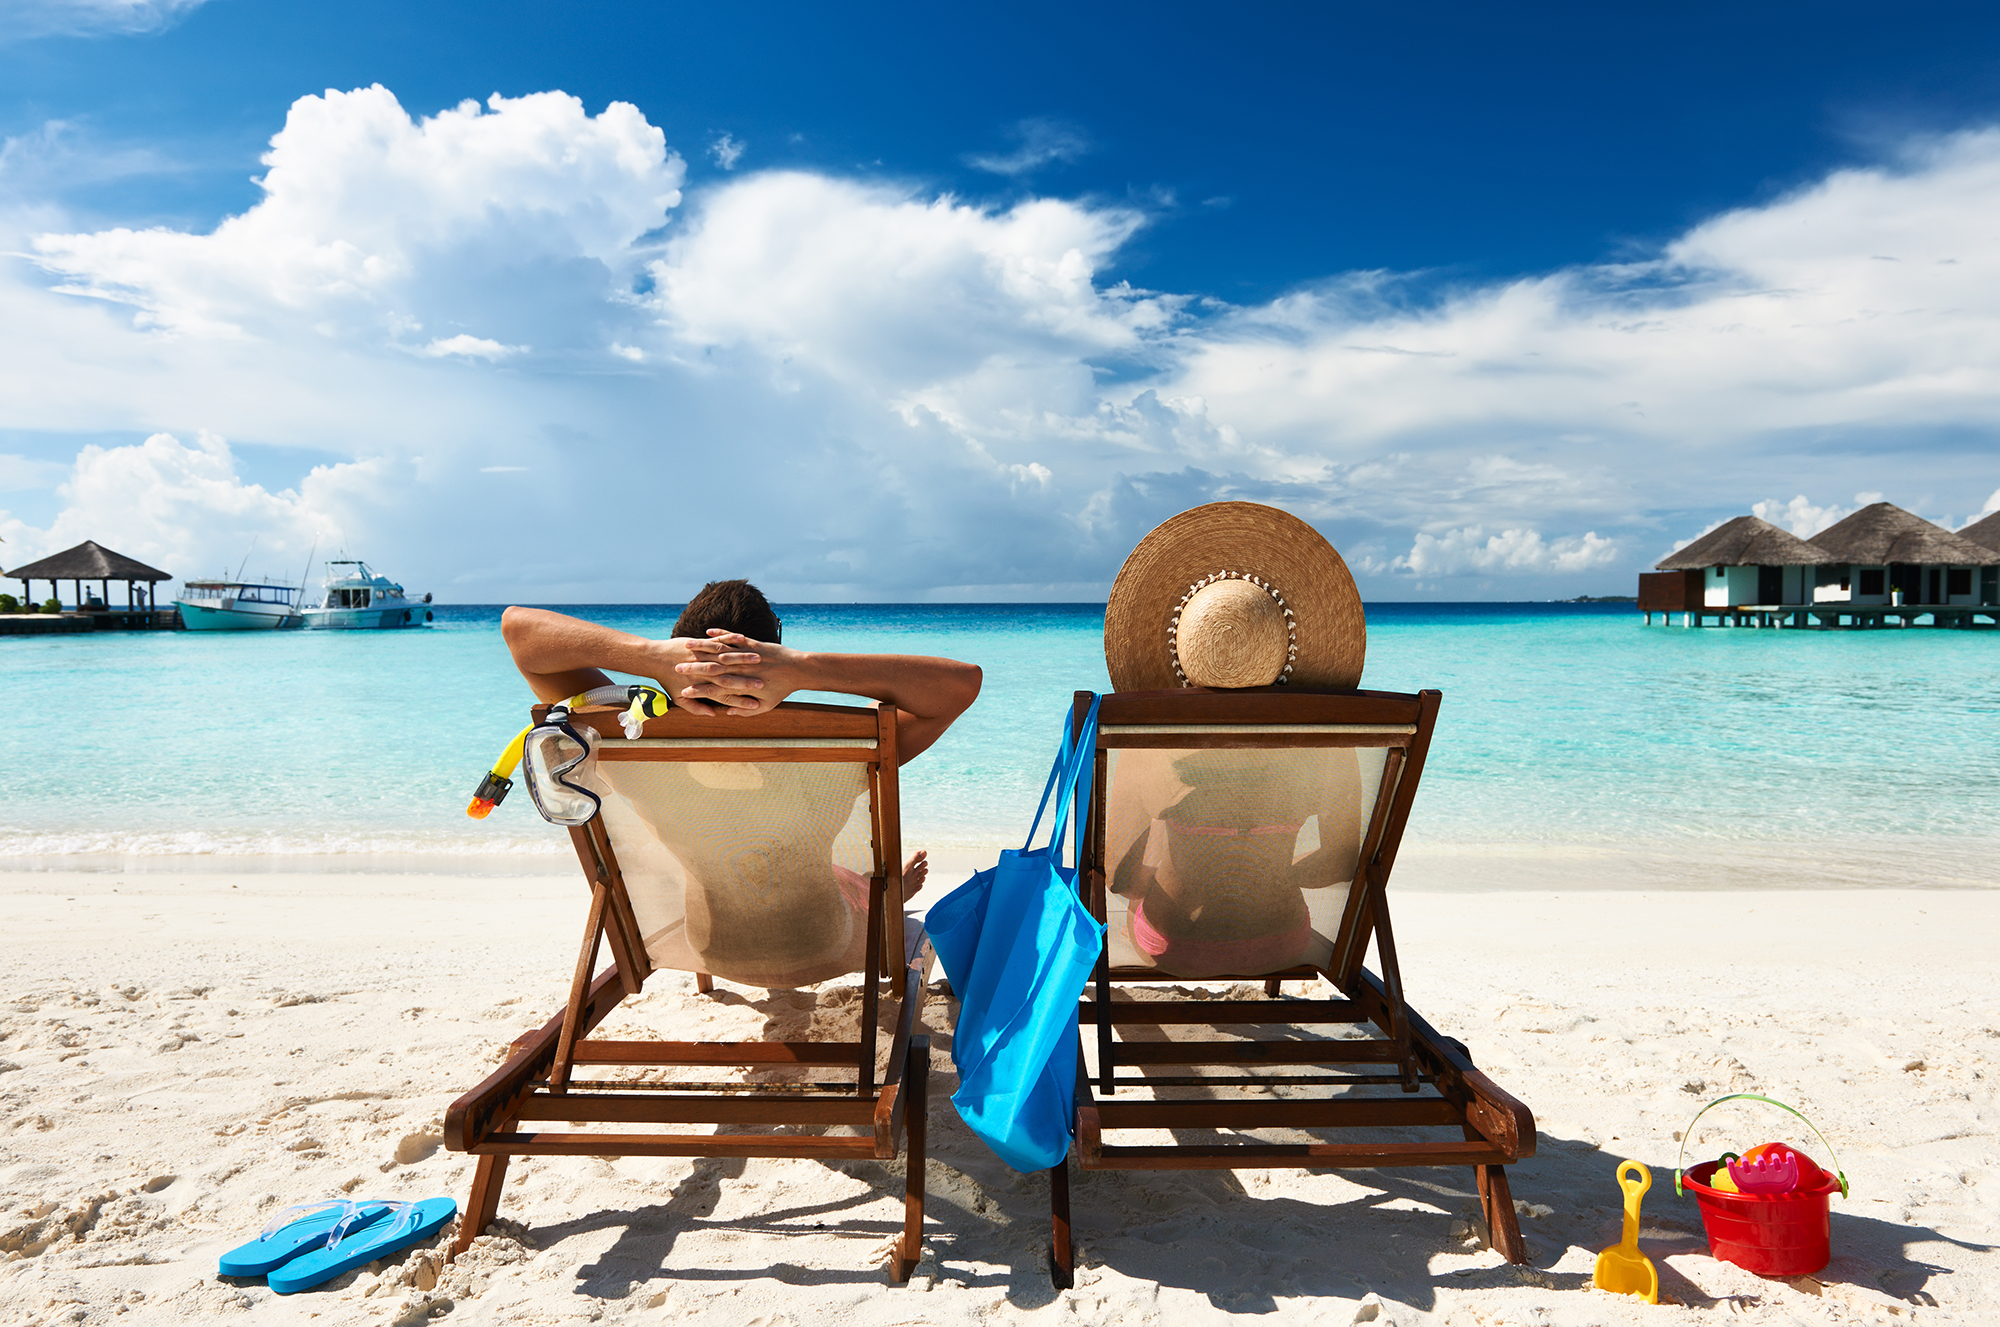 Two people relaxing on white sandy beach.